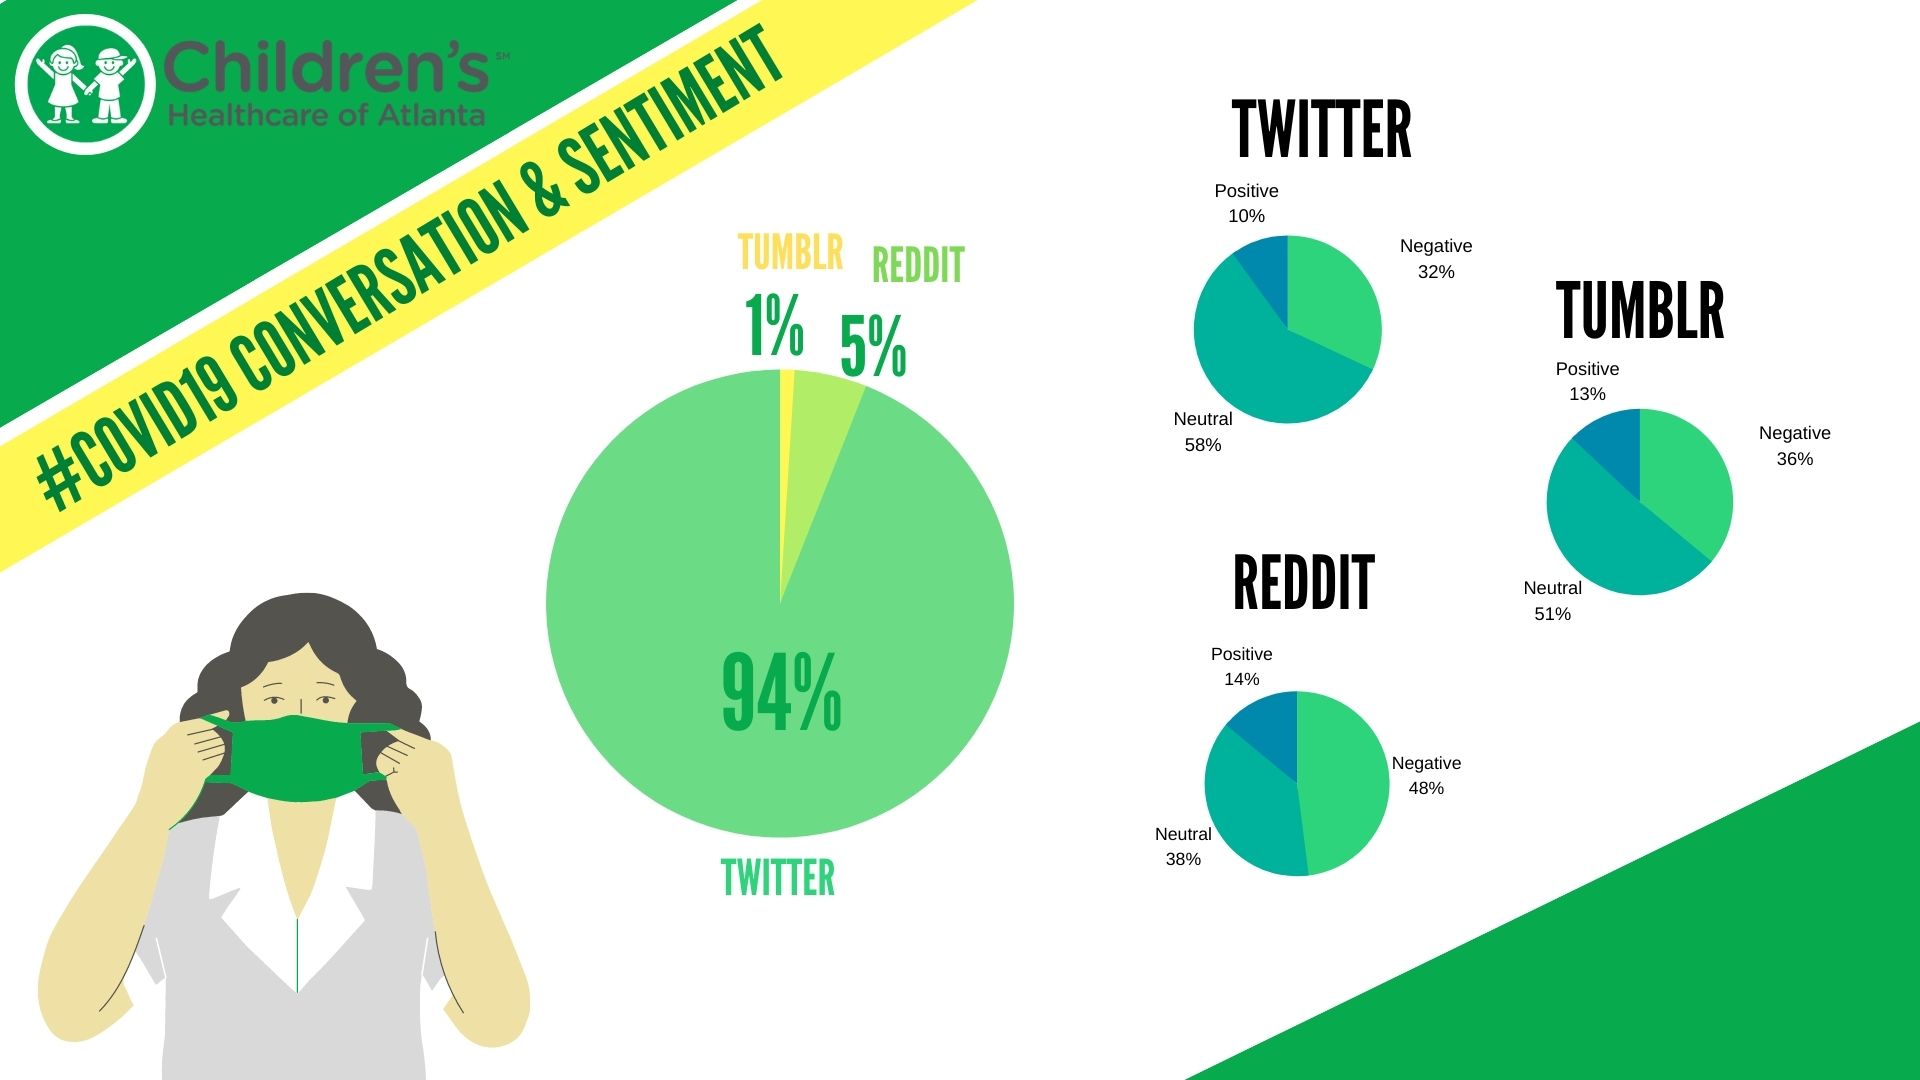 CHOA: Twitter Took Up To 94% of The Conversation